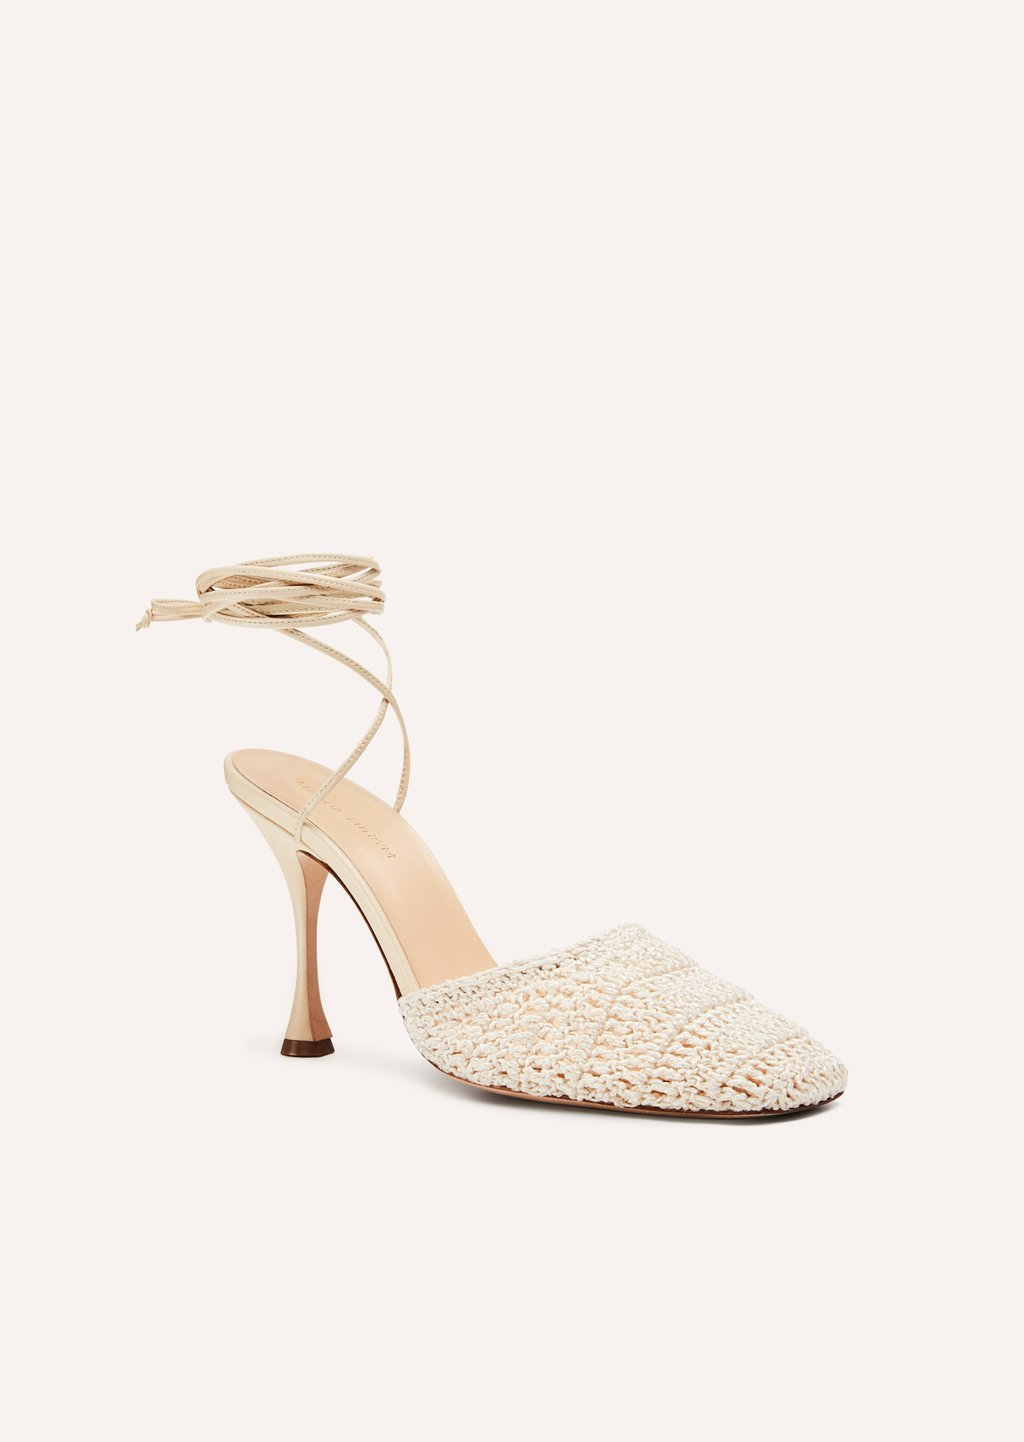 Crochet wrap heels in cream by Magda Butrym, available on magdabutrym.com for $900 Kylie Jenner Shoes Exact Product